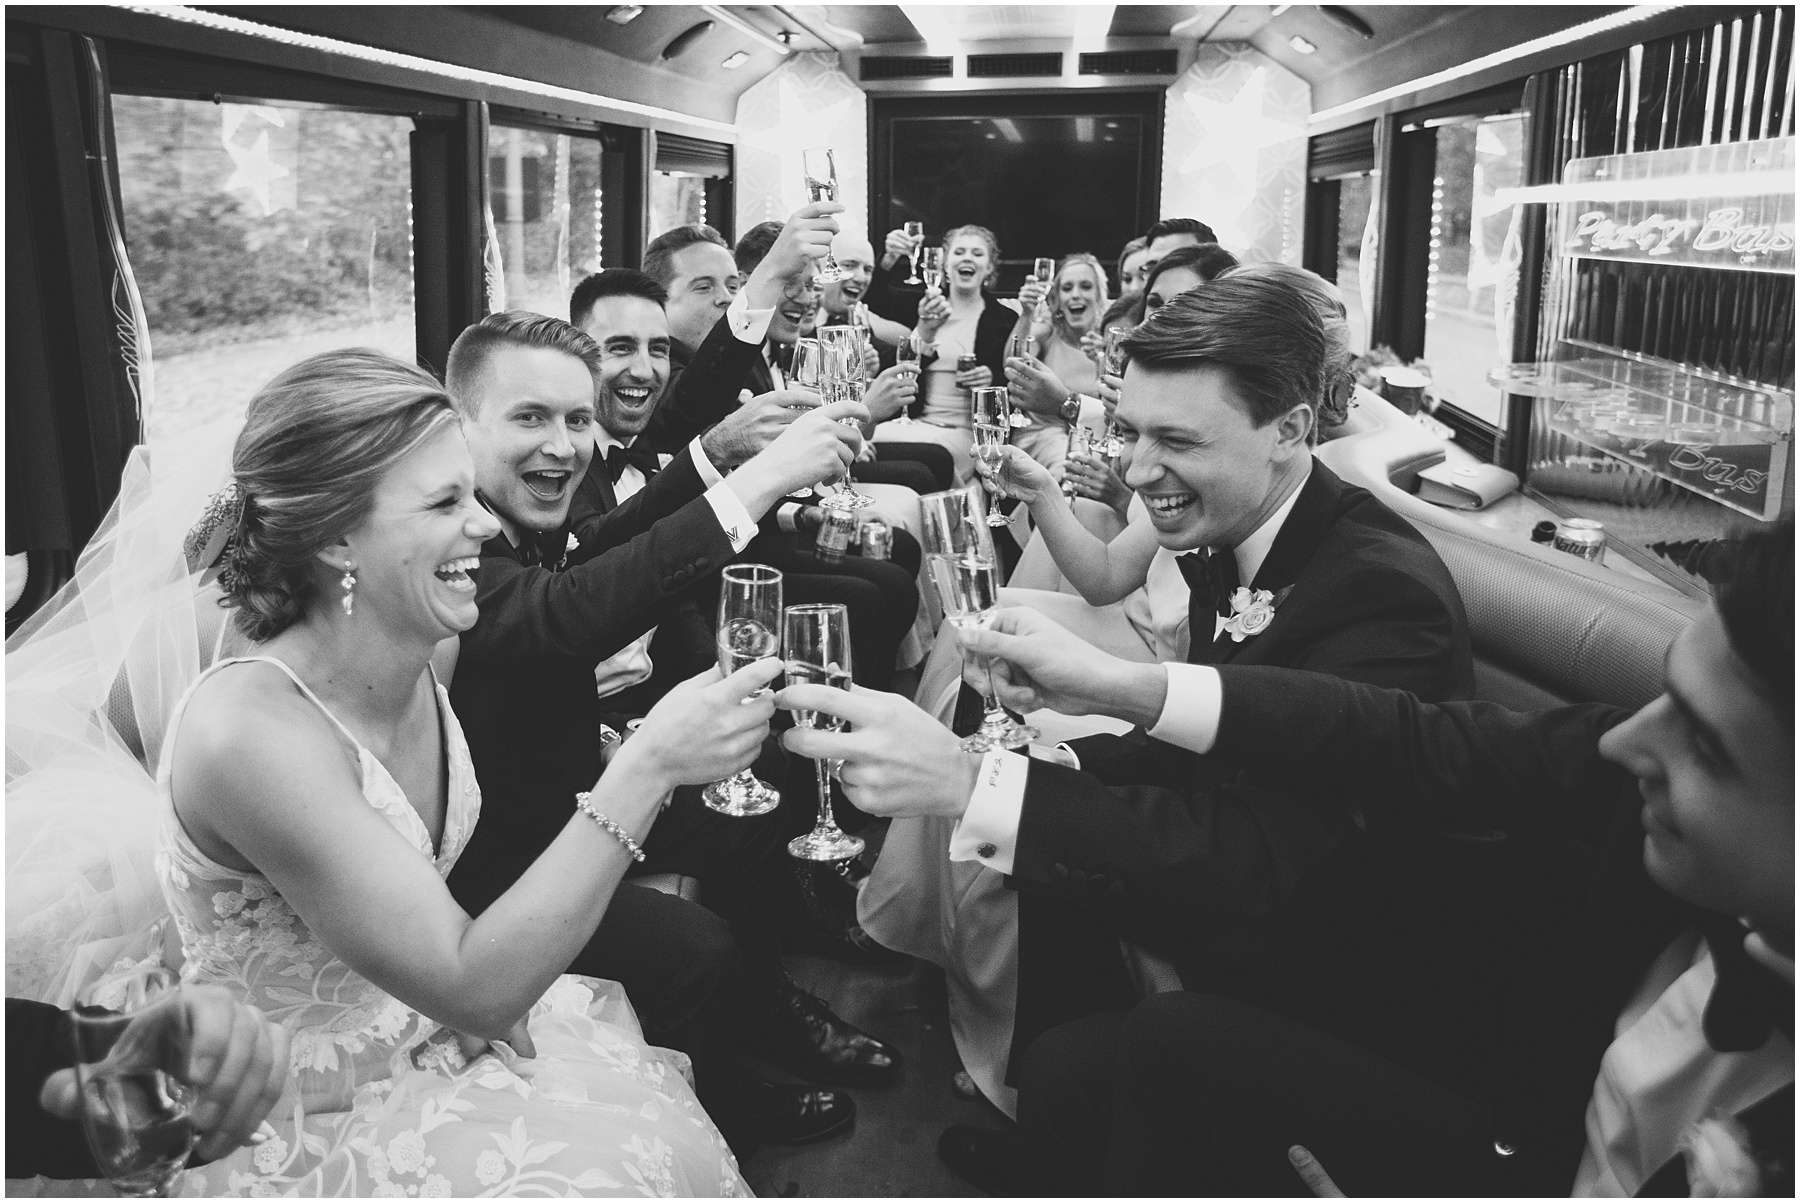 black and white photo of a bride and groom sharing a champagne toast and laughing with their bridal party inside a limousine